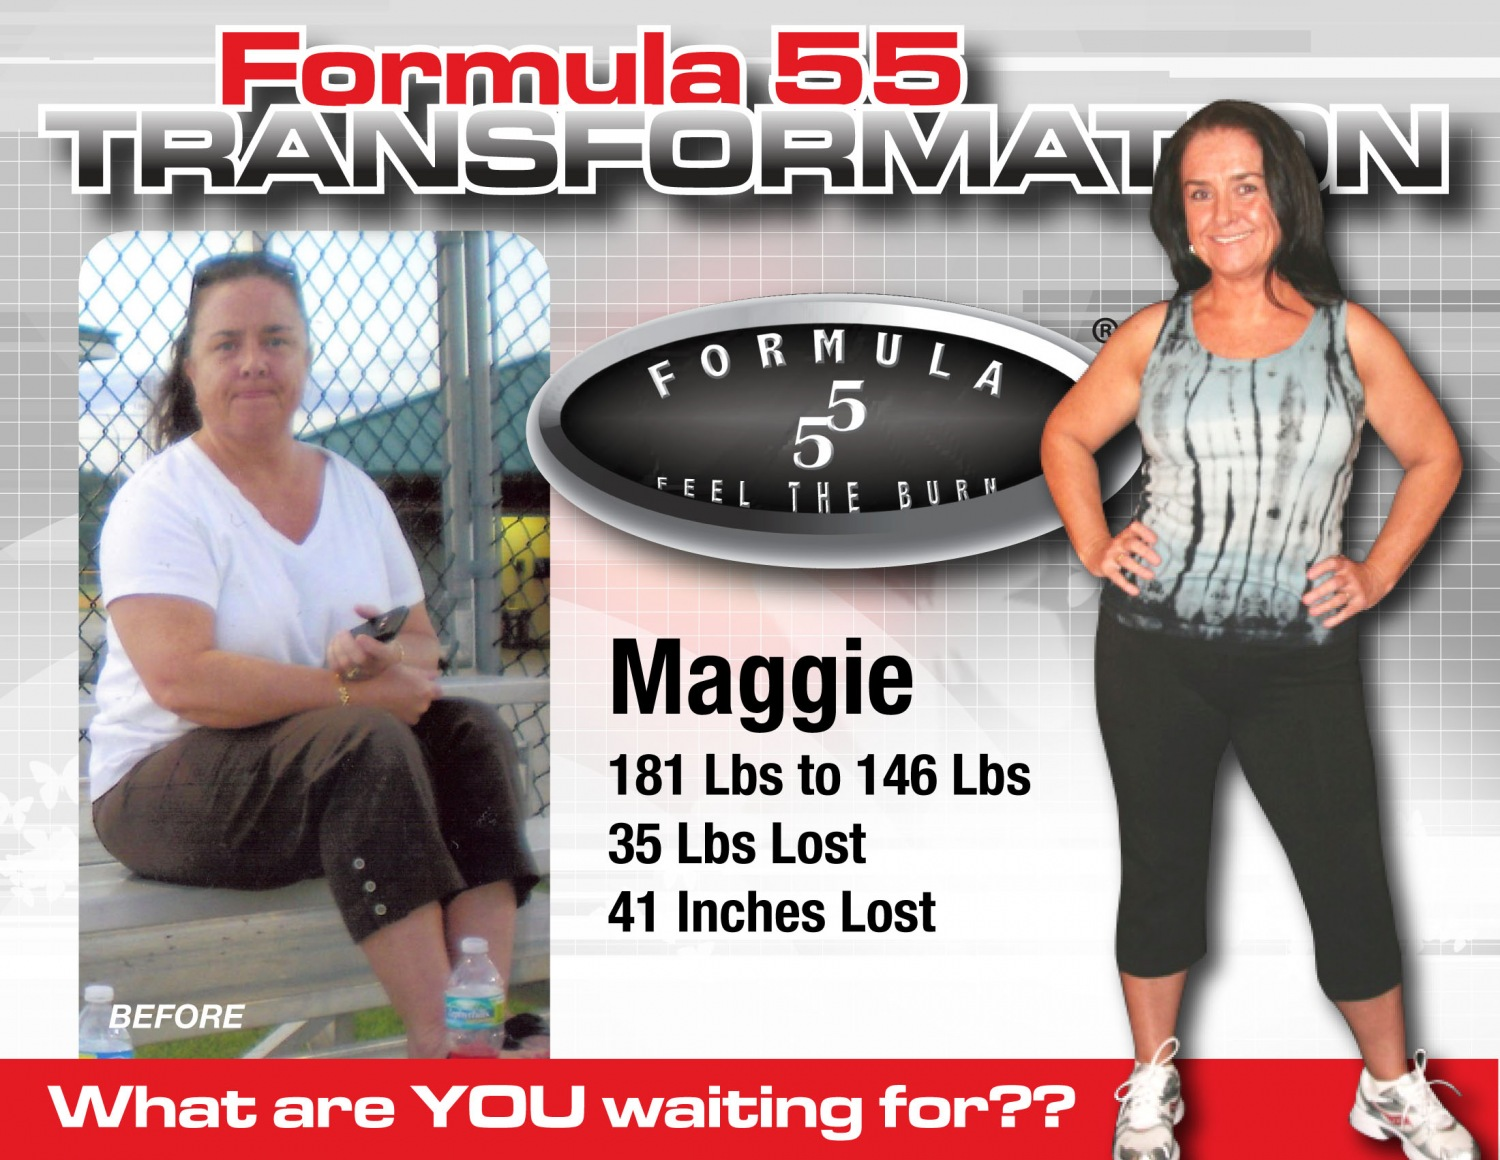 form_55_Transformation_Maggie-1.jpg